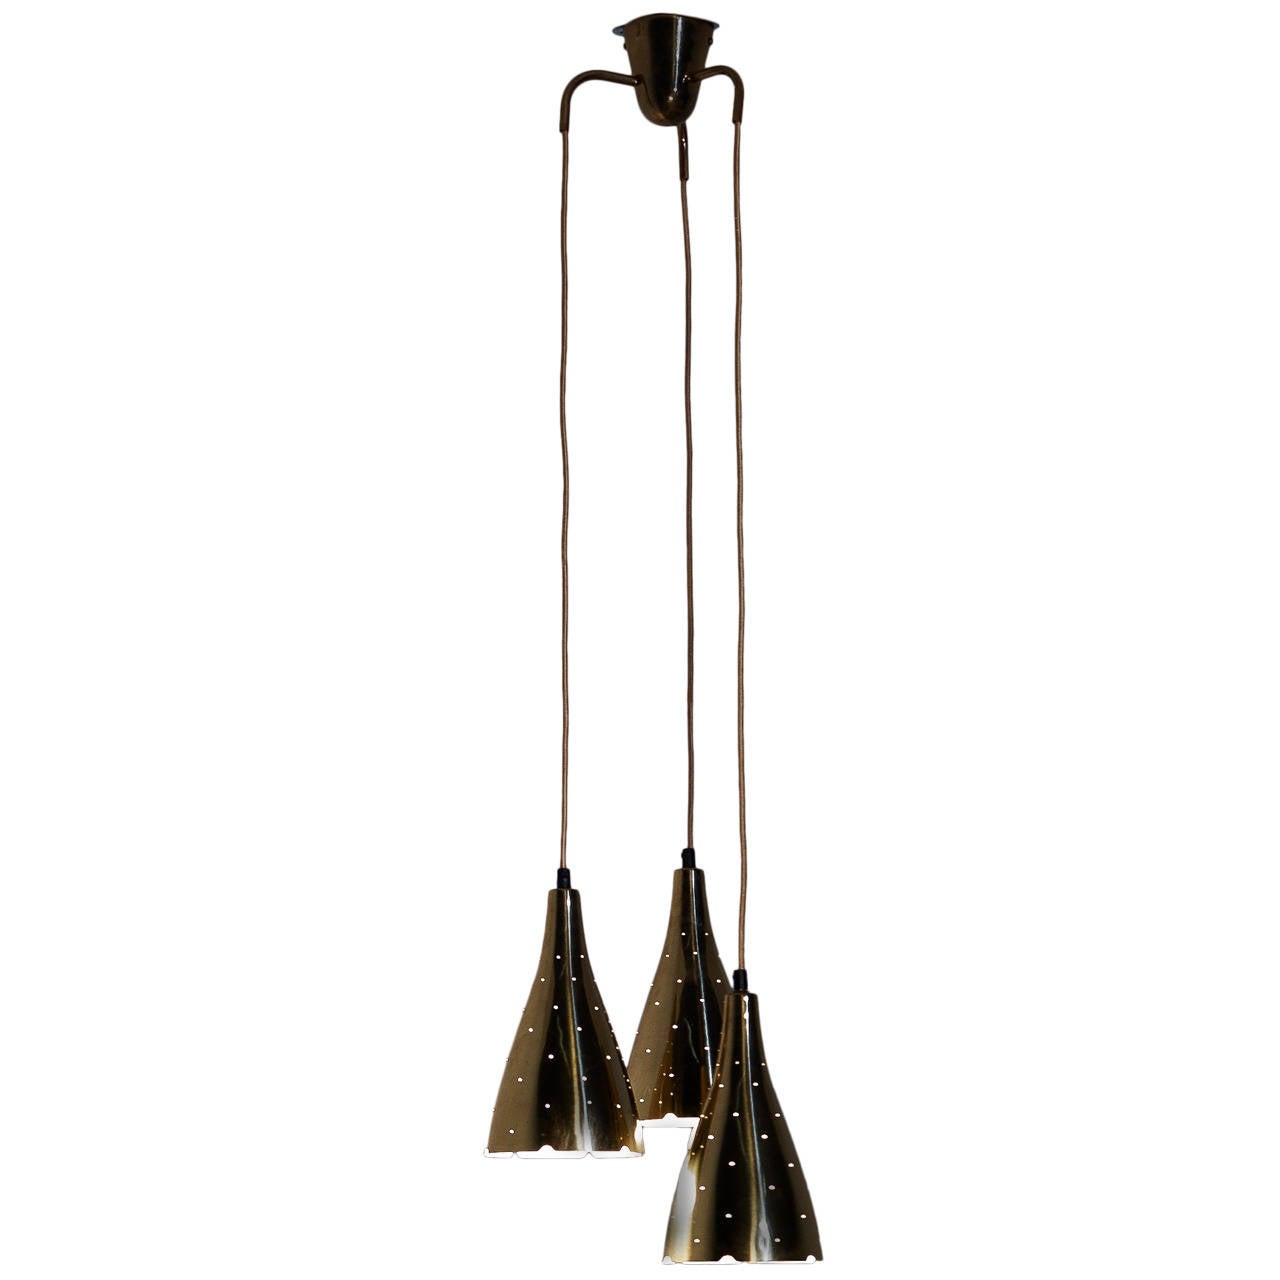 Paavo Tynell Pendant Lamp for Idman, Model 10130 / 3, 1950s